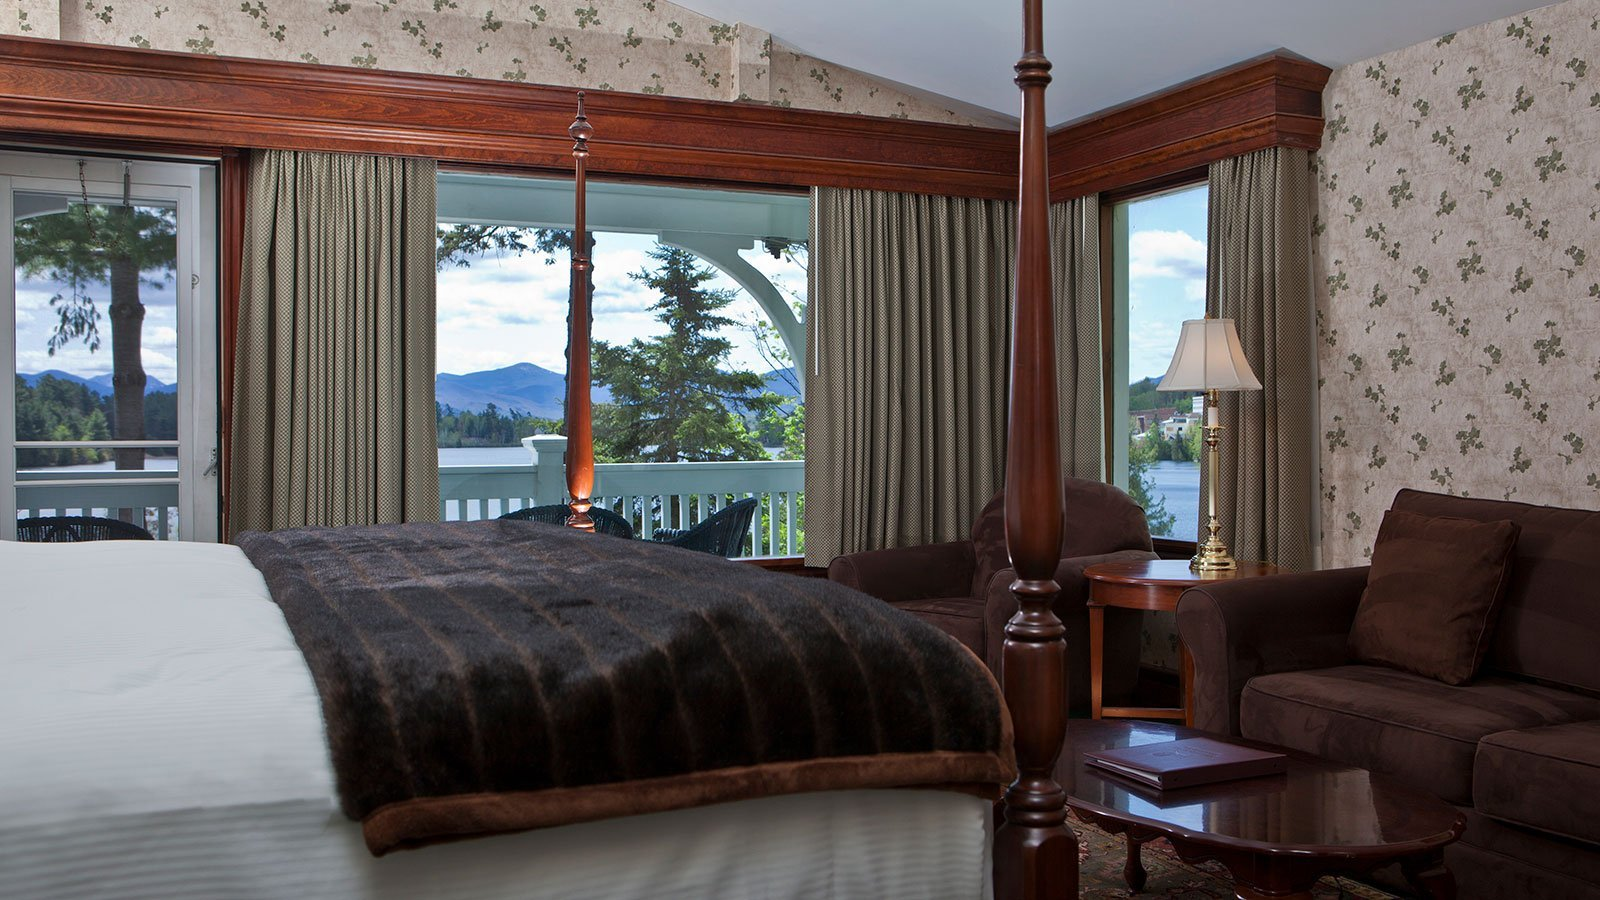 Four-poster bed with a view